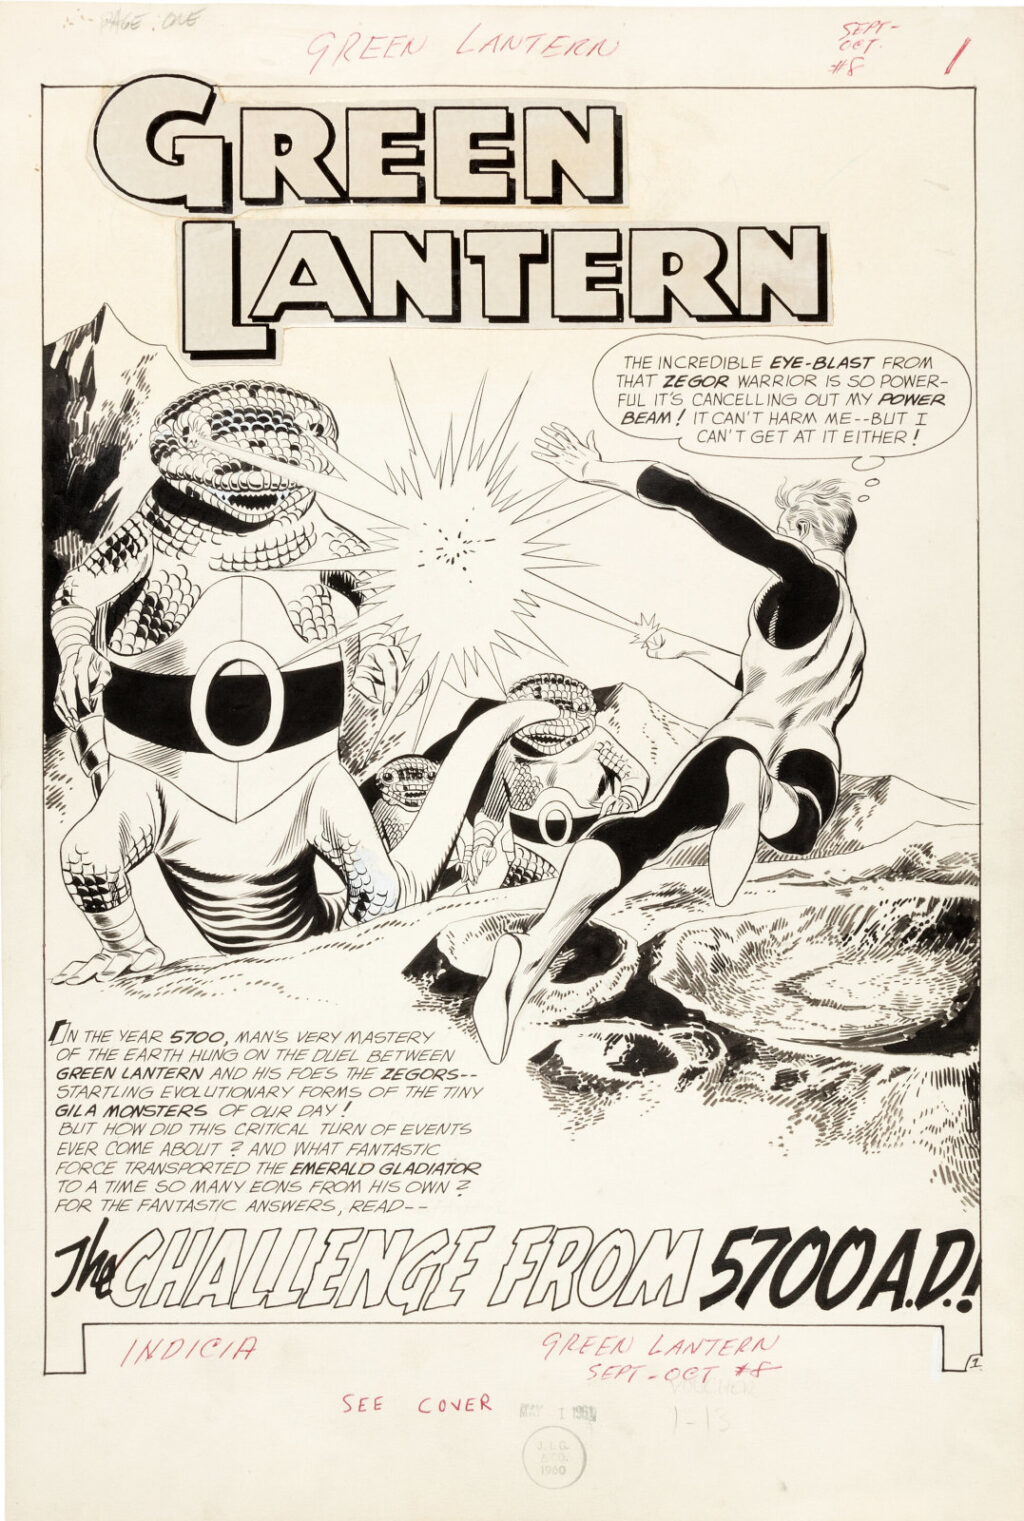 Green Lantern issue 8 page 1 by Gil Kane and Joe Giella